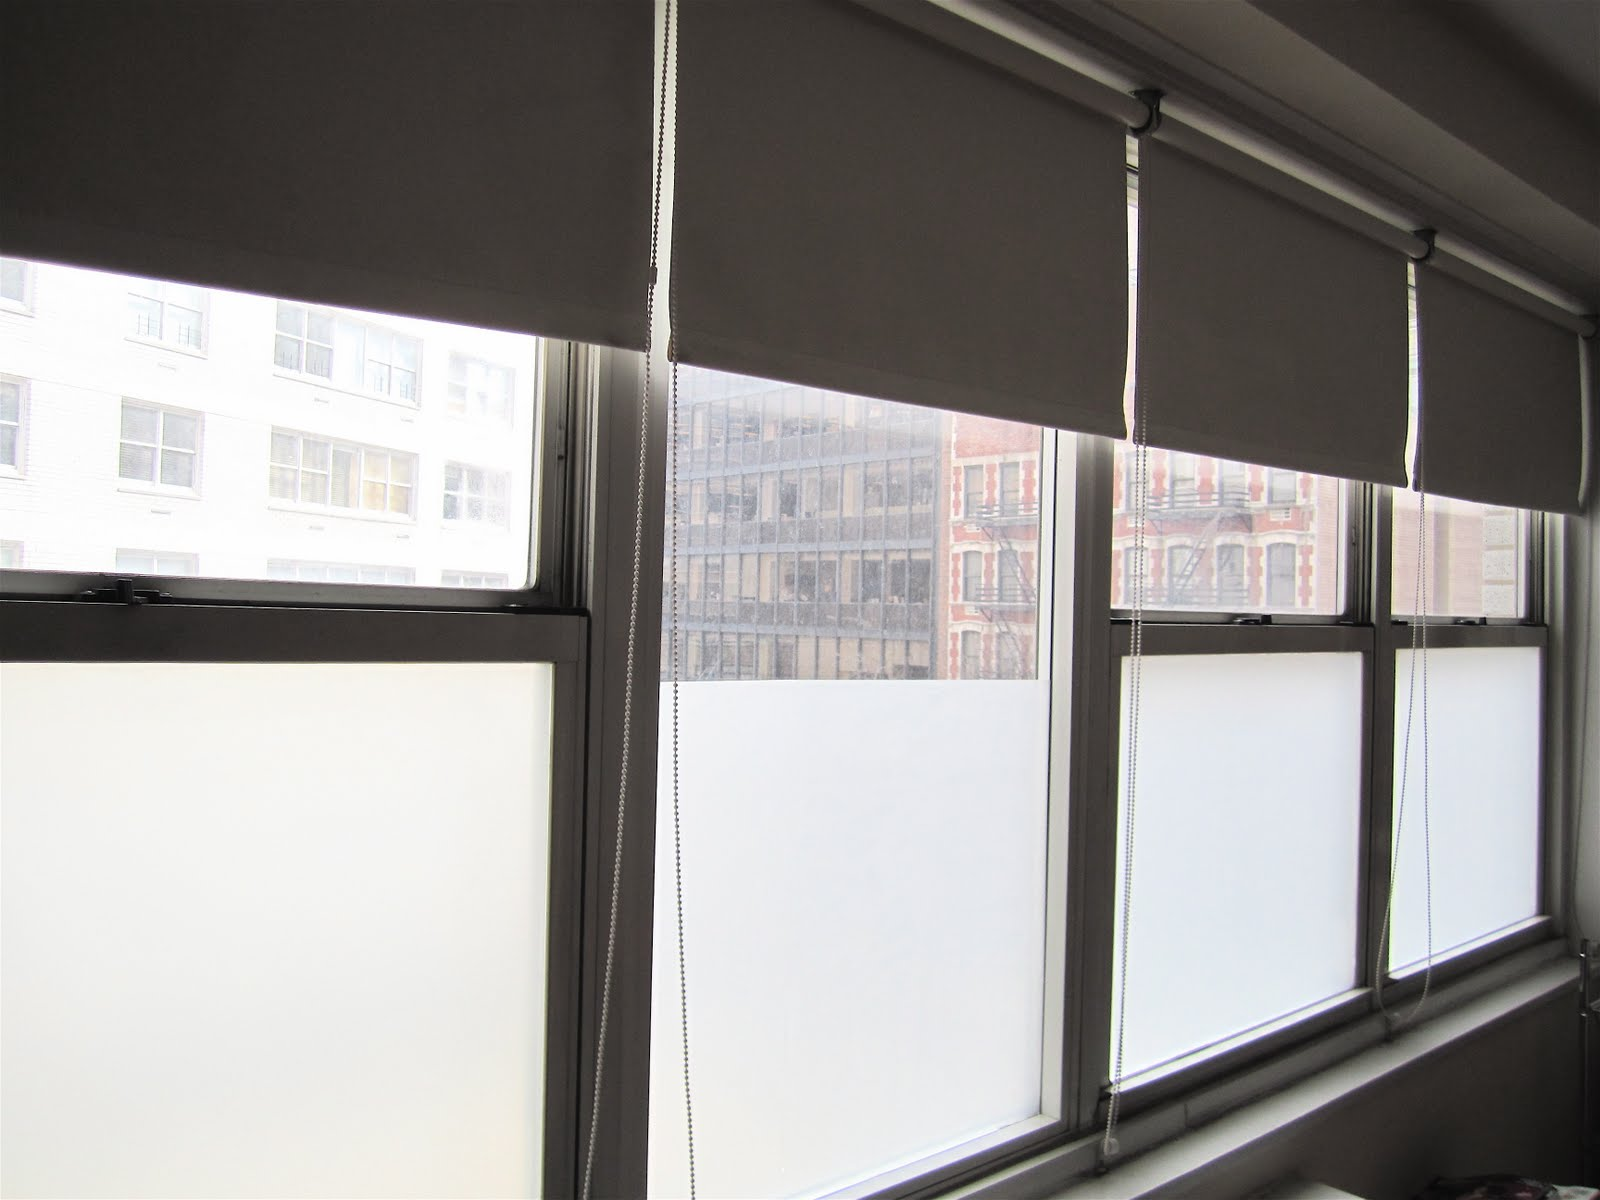 View topic bathroom windows exposed best solution for privacy -  Exposed To Let Light In And Then Hang Curtains Around I Have Really Struggled To Find Images Of What That Would Look Like I Think The Closest Thing I